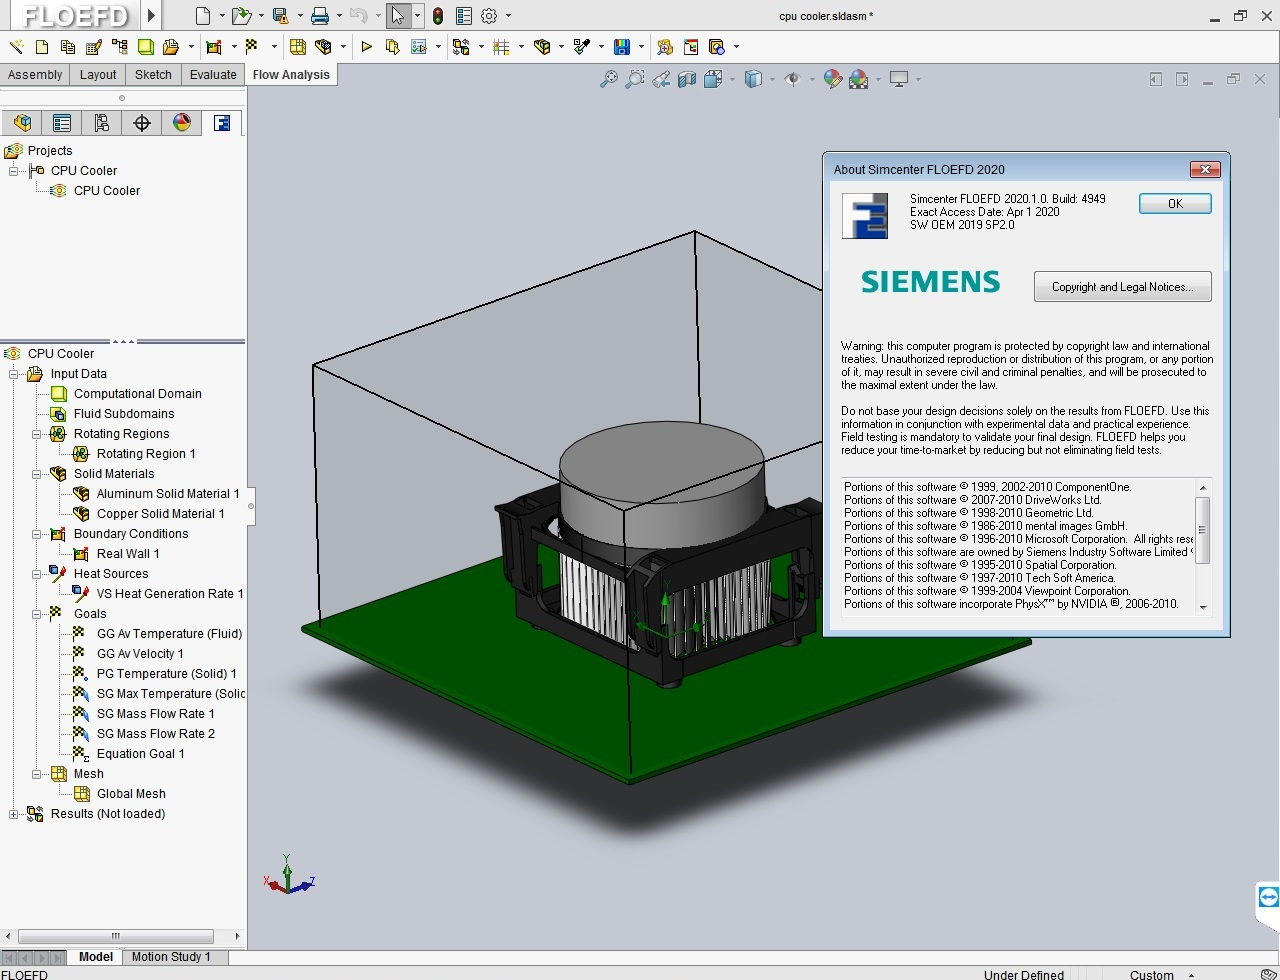 Working with Siemens Simcenter FloEFD 2020.1.0 v4949 Standalone full